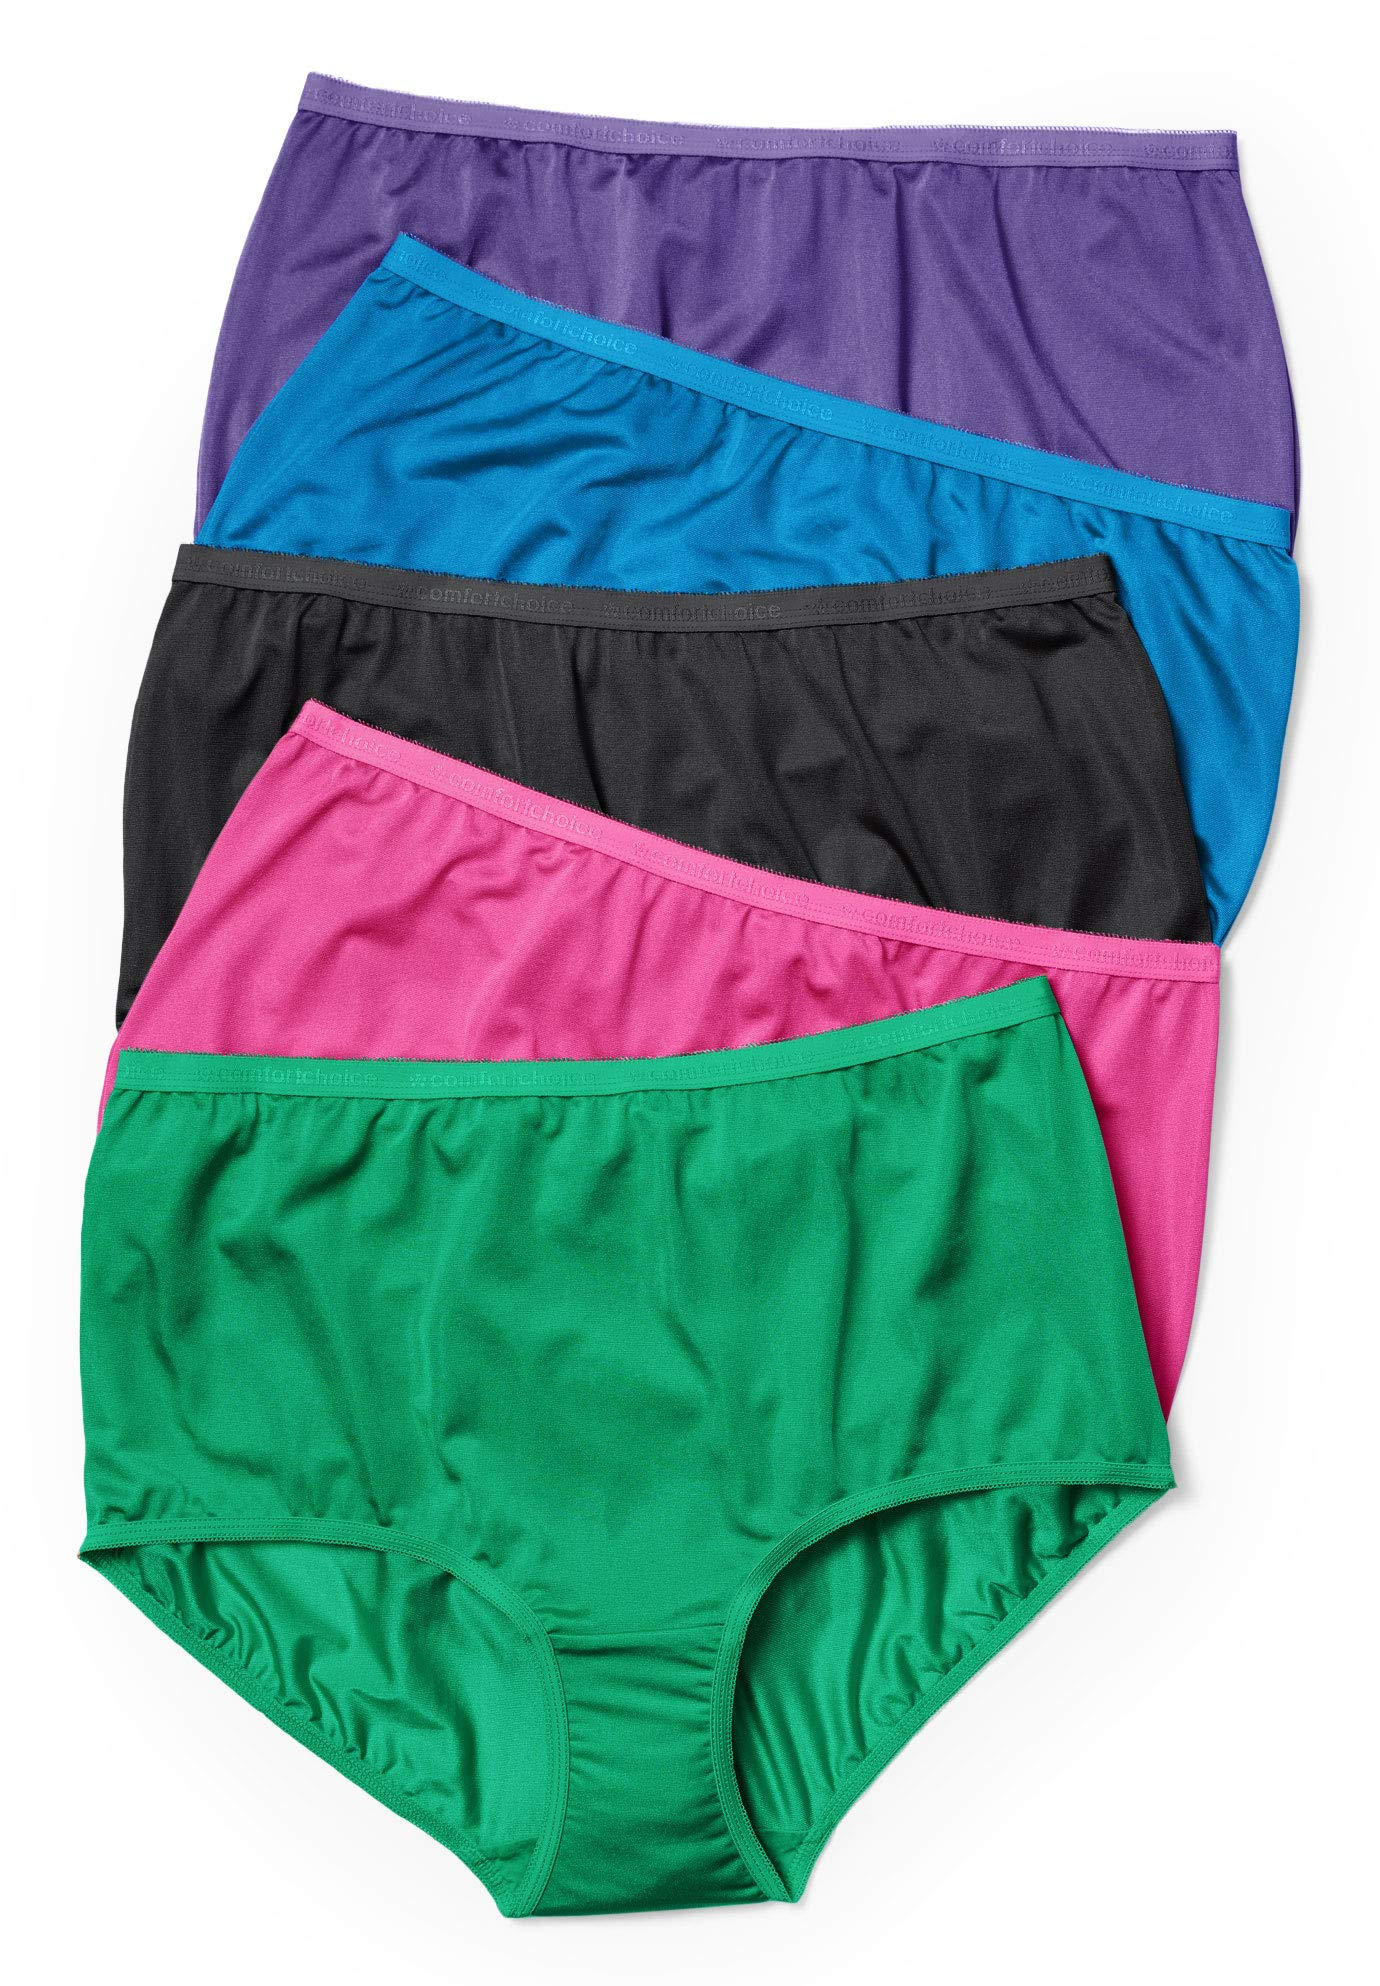 Comfort Choice Women's Plus Size 5-Pack Nylon Full-Cut Brief